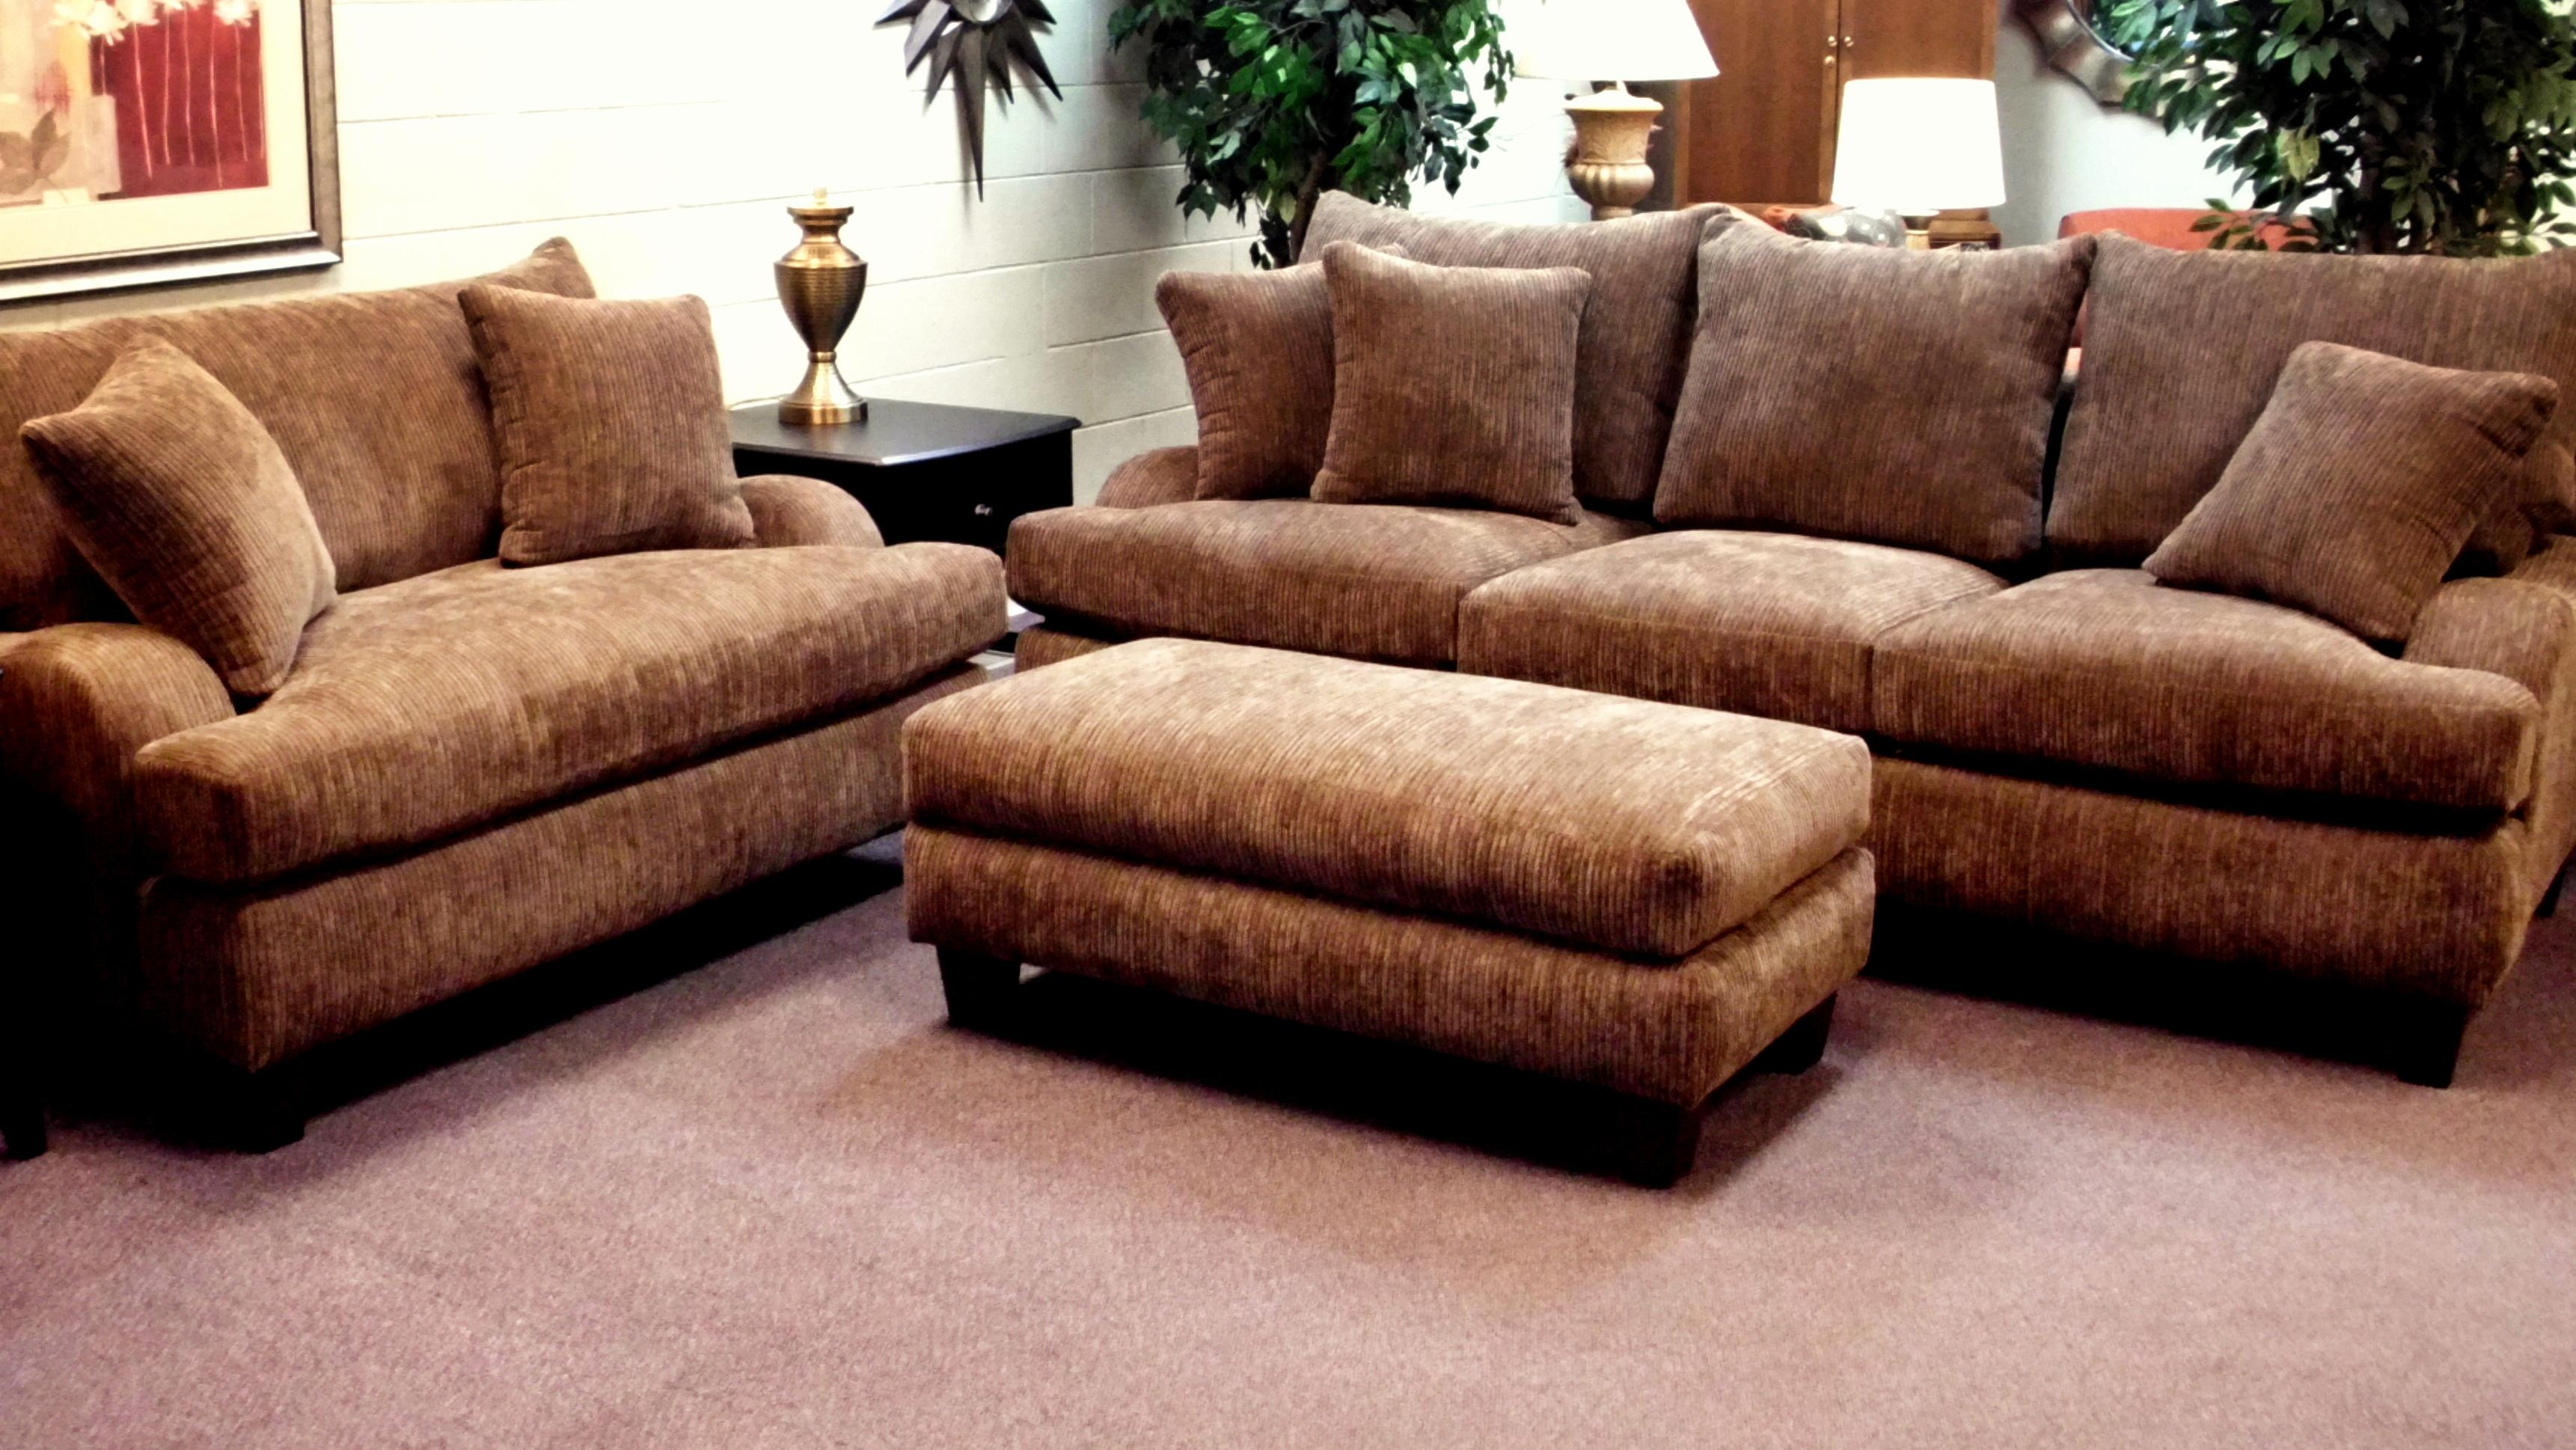 Furniture: Extra Large Sofa   Oversized Couch   Deep Cushion Couch With Regard To Deep Cushion Sofa (Image 12 of 20)